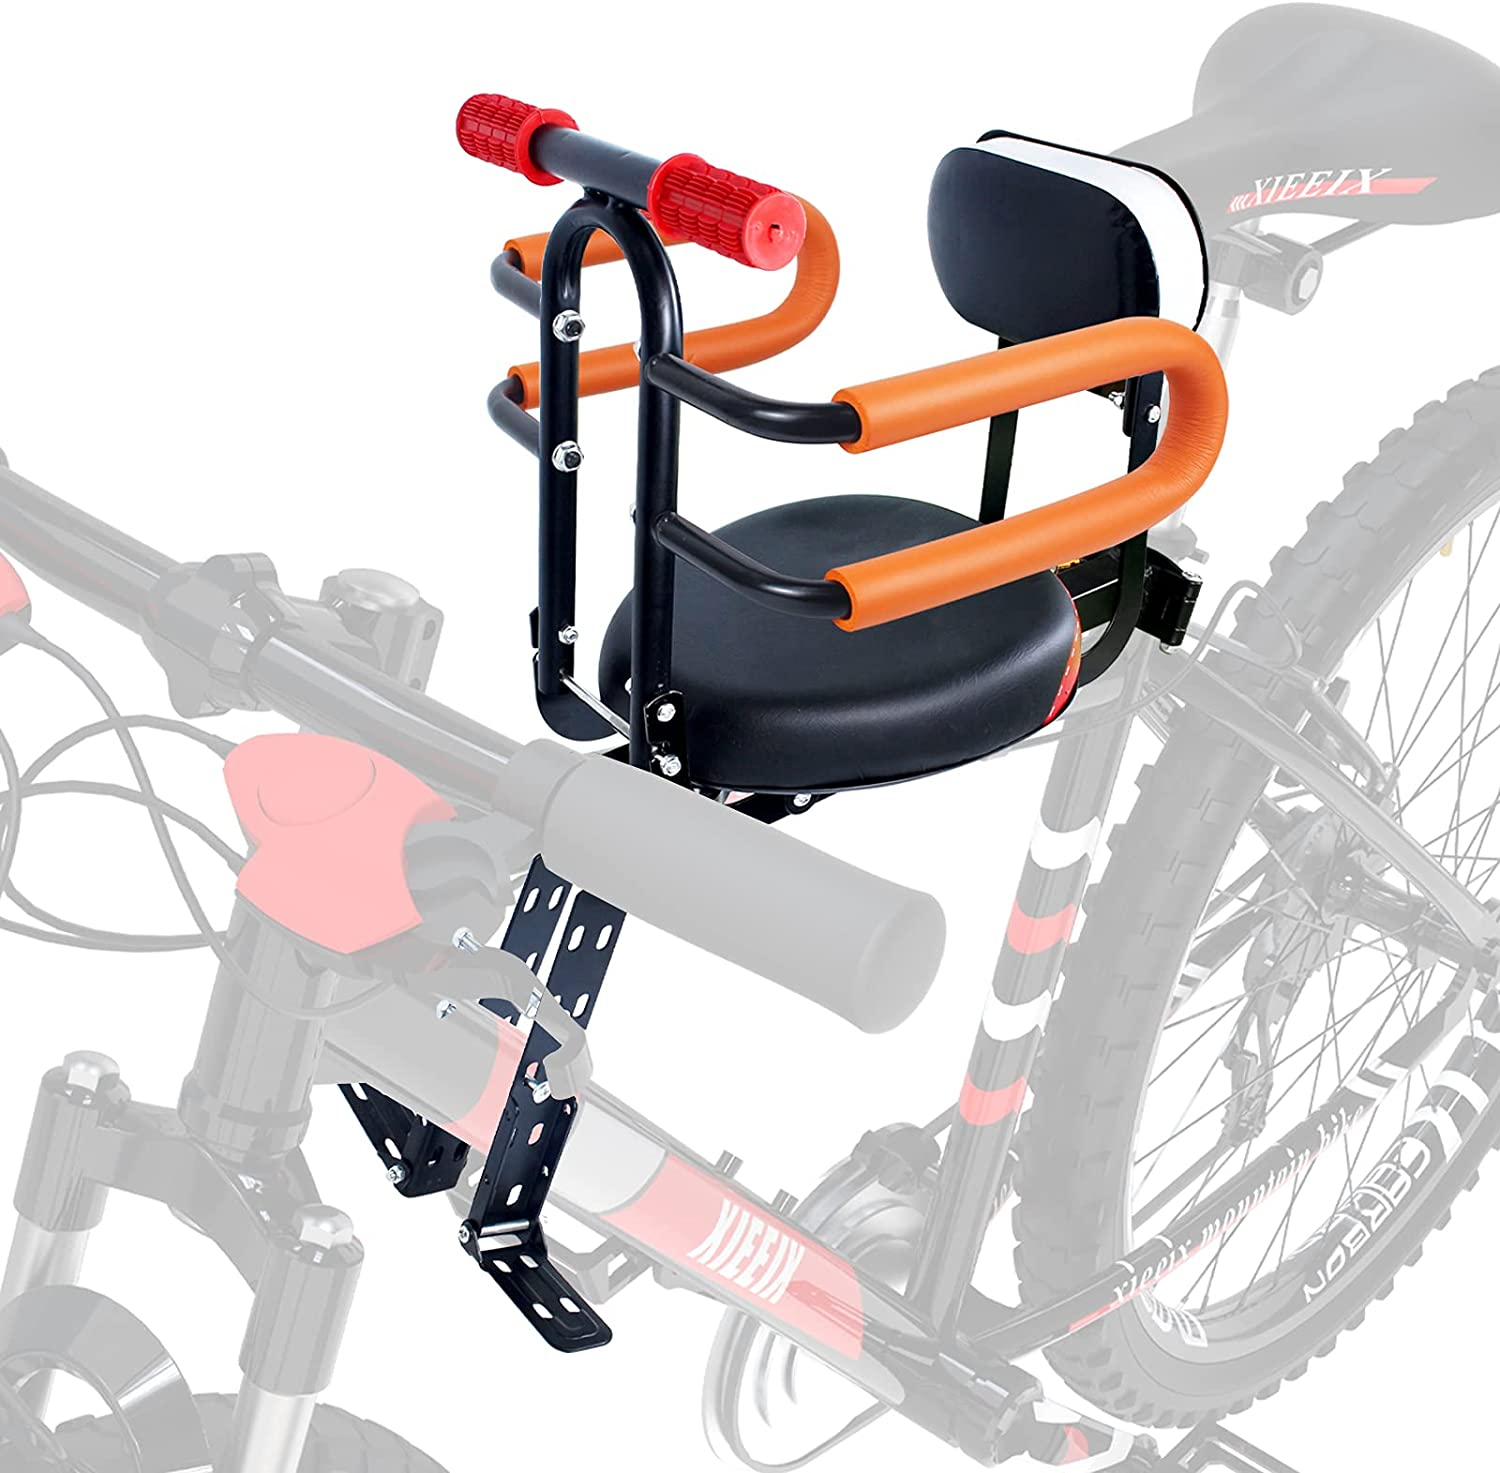 XIEEIX Front Mount Child Bike Seats, Foldable Baby Kids' Bicycle Seat with Guardrail Seat Back, Adjustable Seat and Pedal Child Bicycle Seat, Child Safety Seat Suitable for Various Types of Bicycles